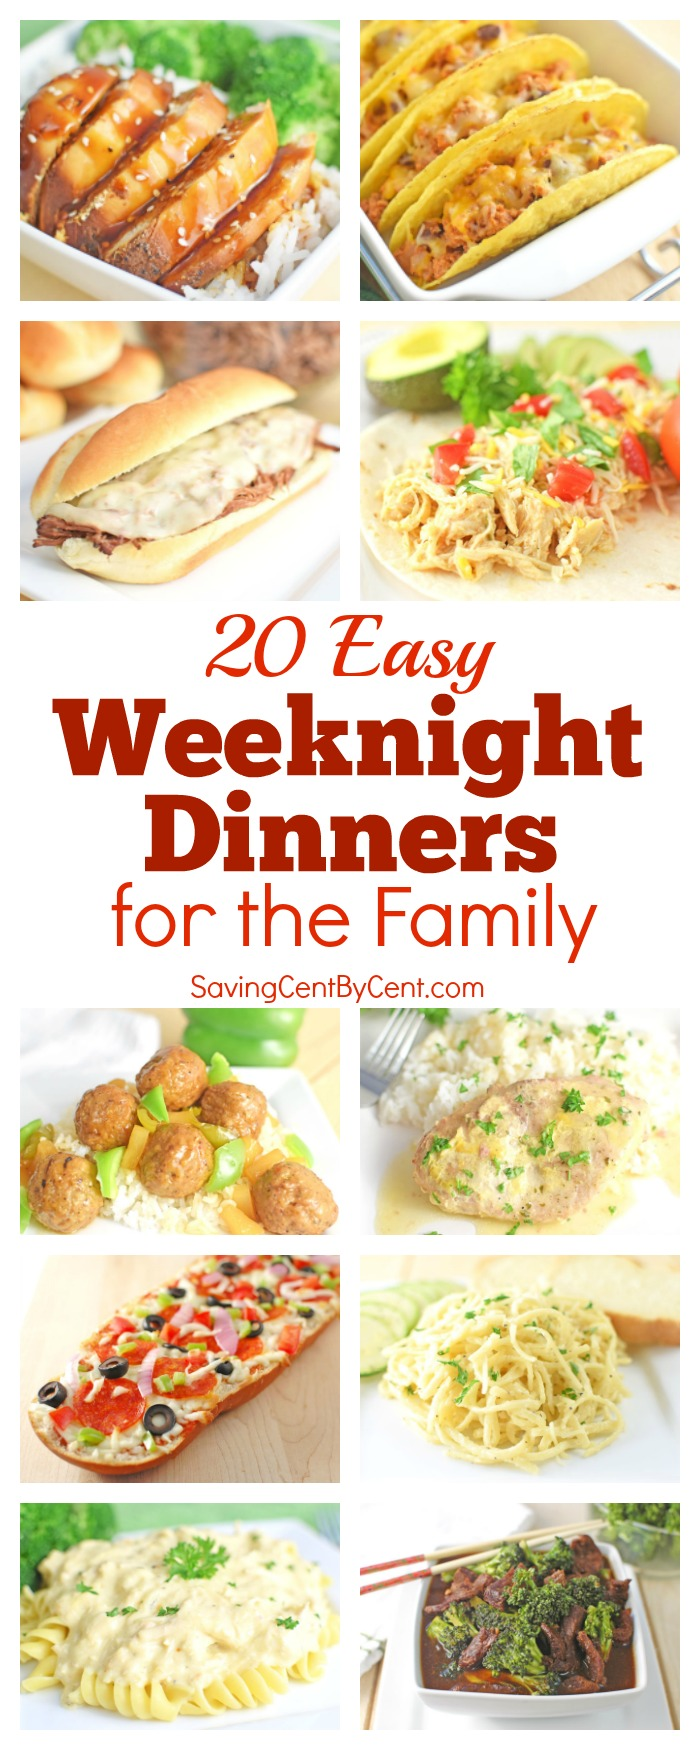 20 Easy Weeknight Dinners for the Family